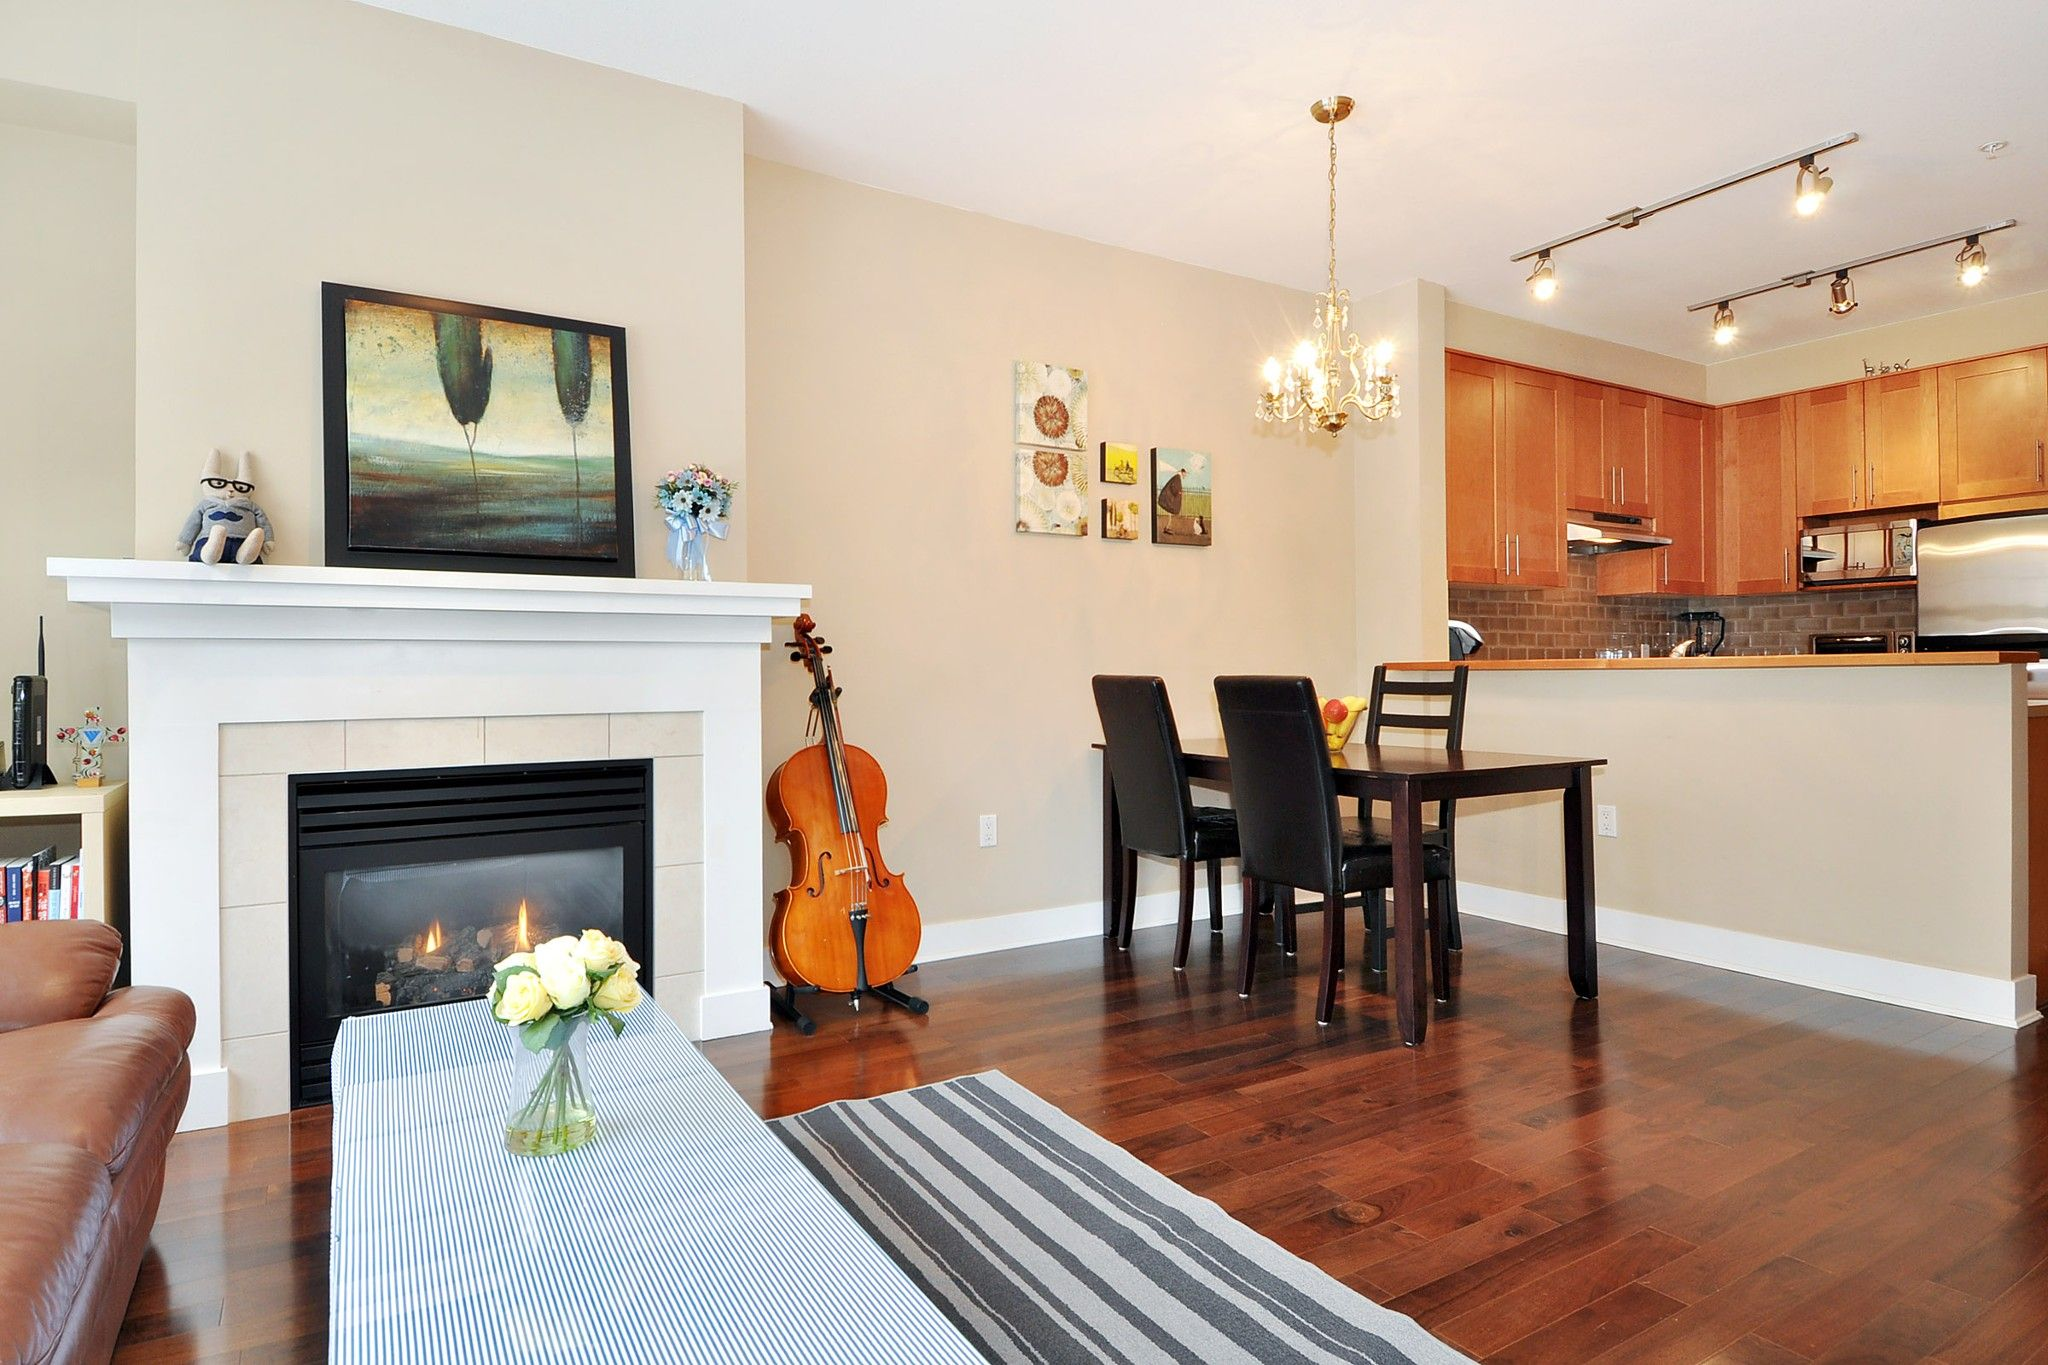 """Photo 3: Photos: 222 2083 W 33RD Avenue in Vancouver: Quilchena Condo for sale in """"DEVONSHIRE HOUSE"""" (Vancouver West)  : MLS®# R2341234"""